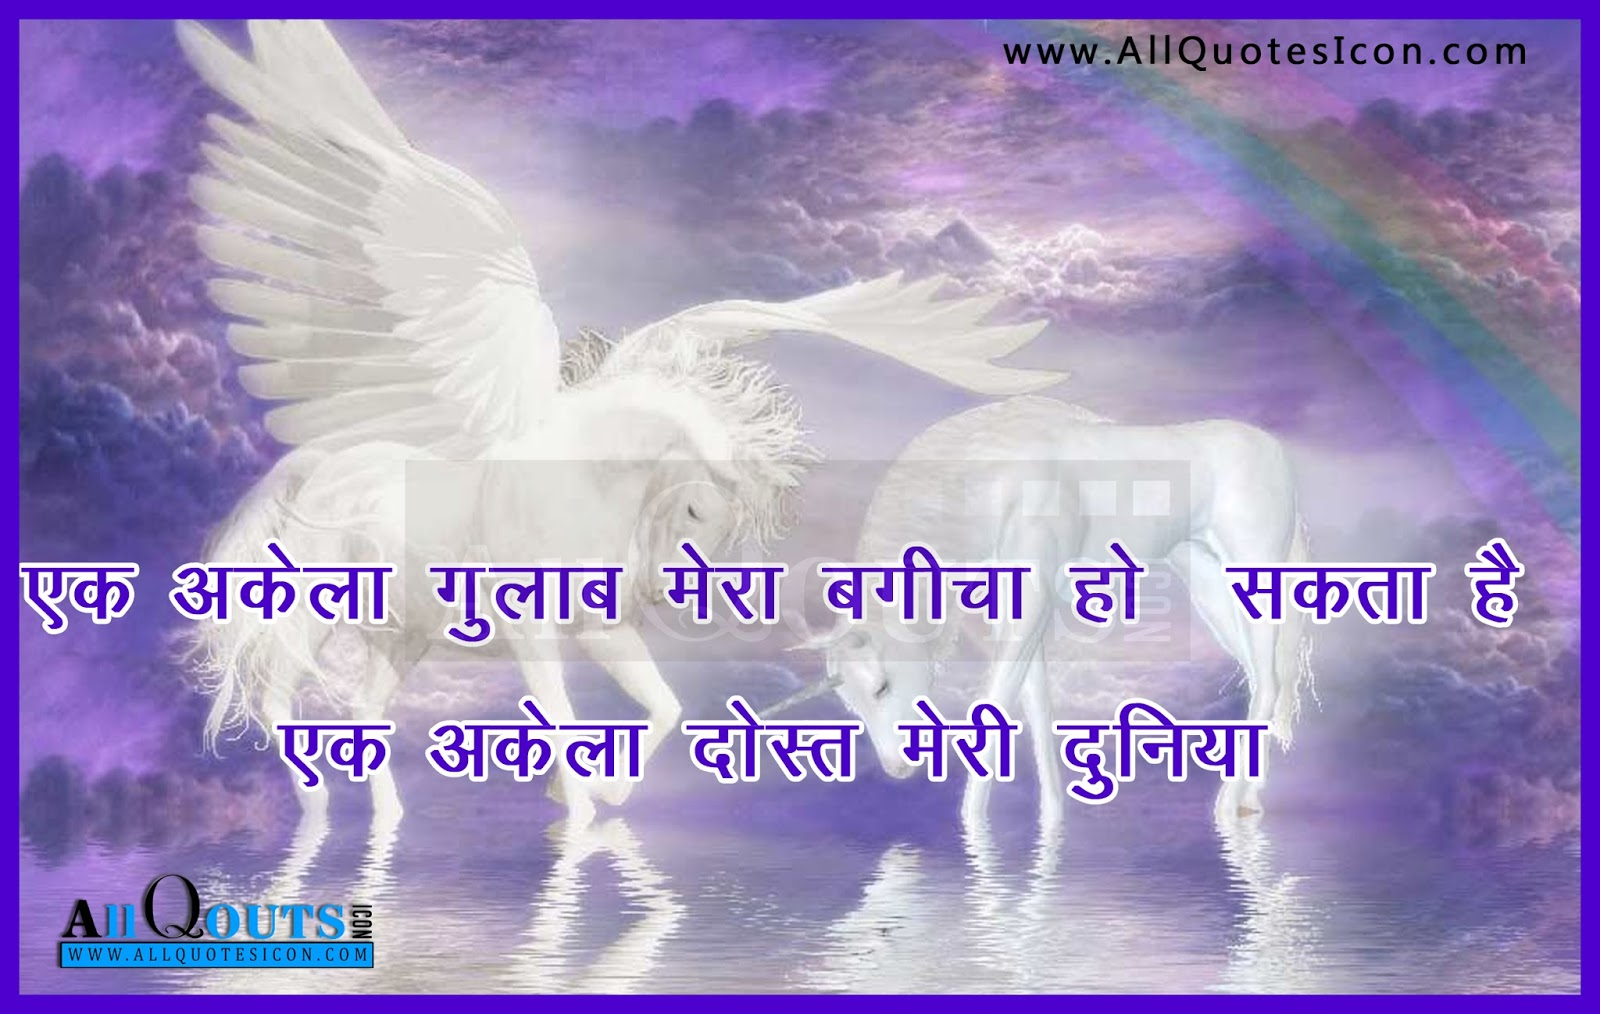 Best Friendship Quotes In Hindi Hd Wallpapers Best Thoughts And